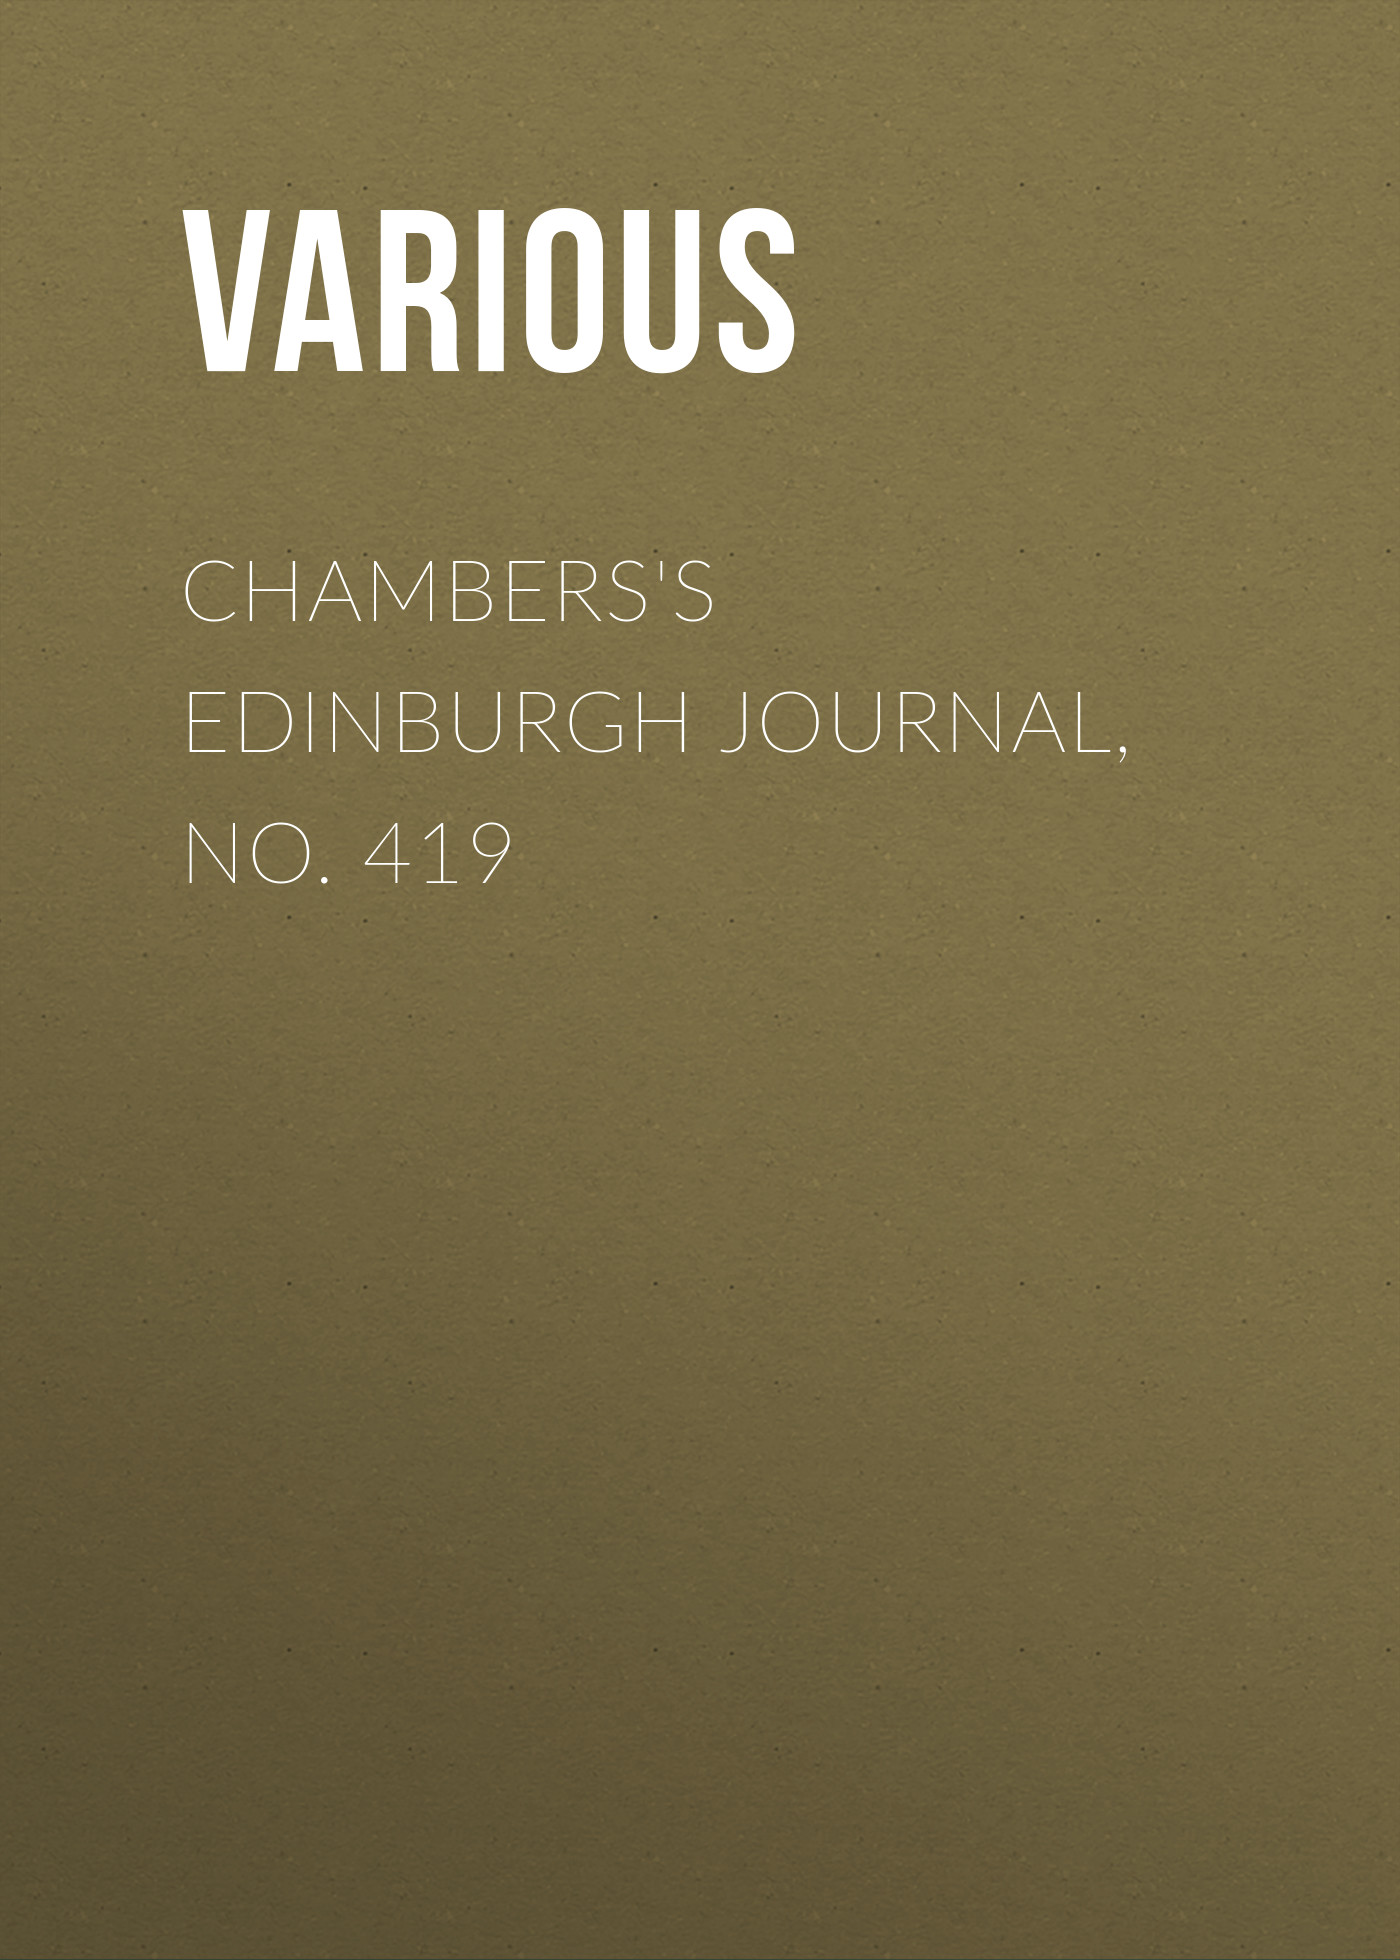 купить Various Chambers's Edinburgh Journal, No. 419 по цене 0 рублей